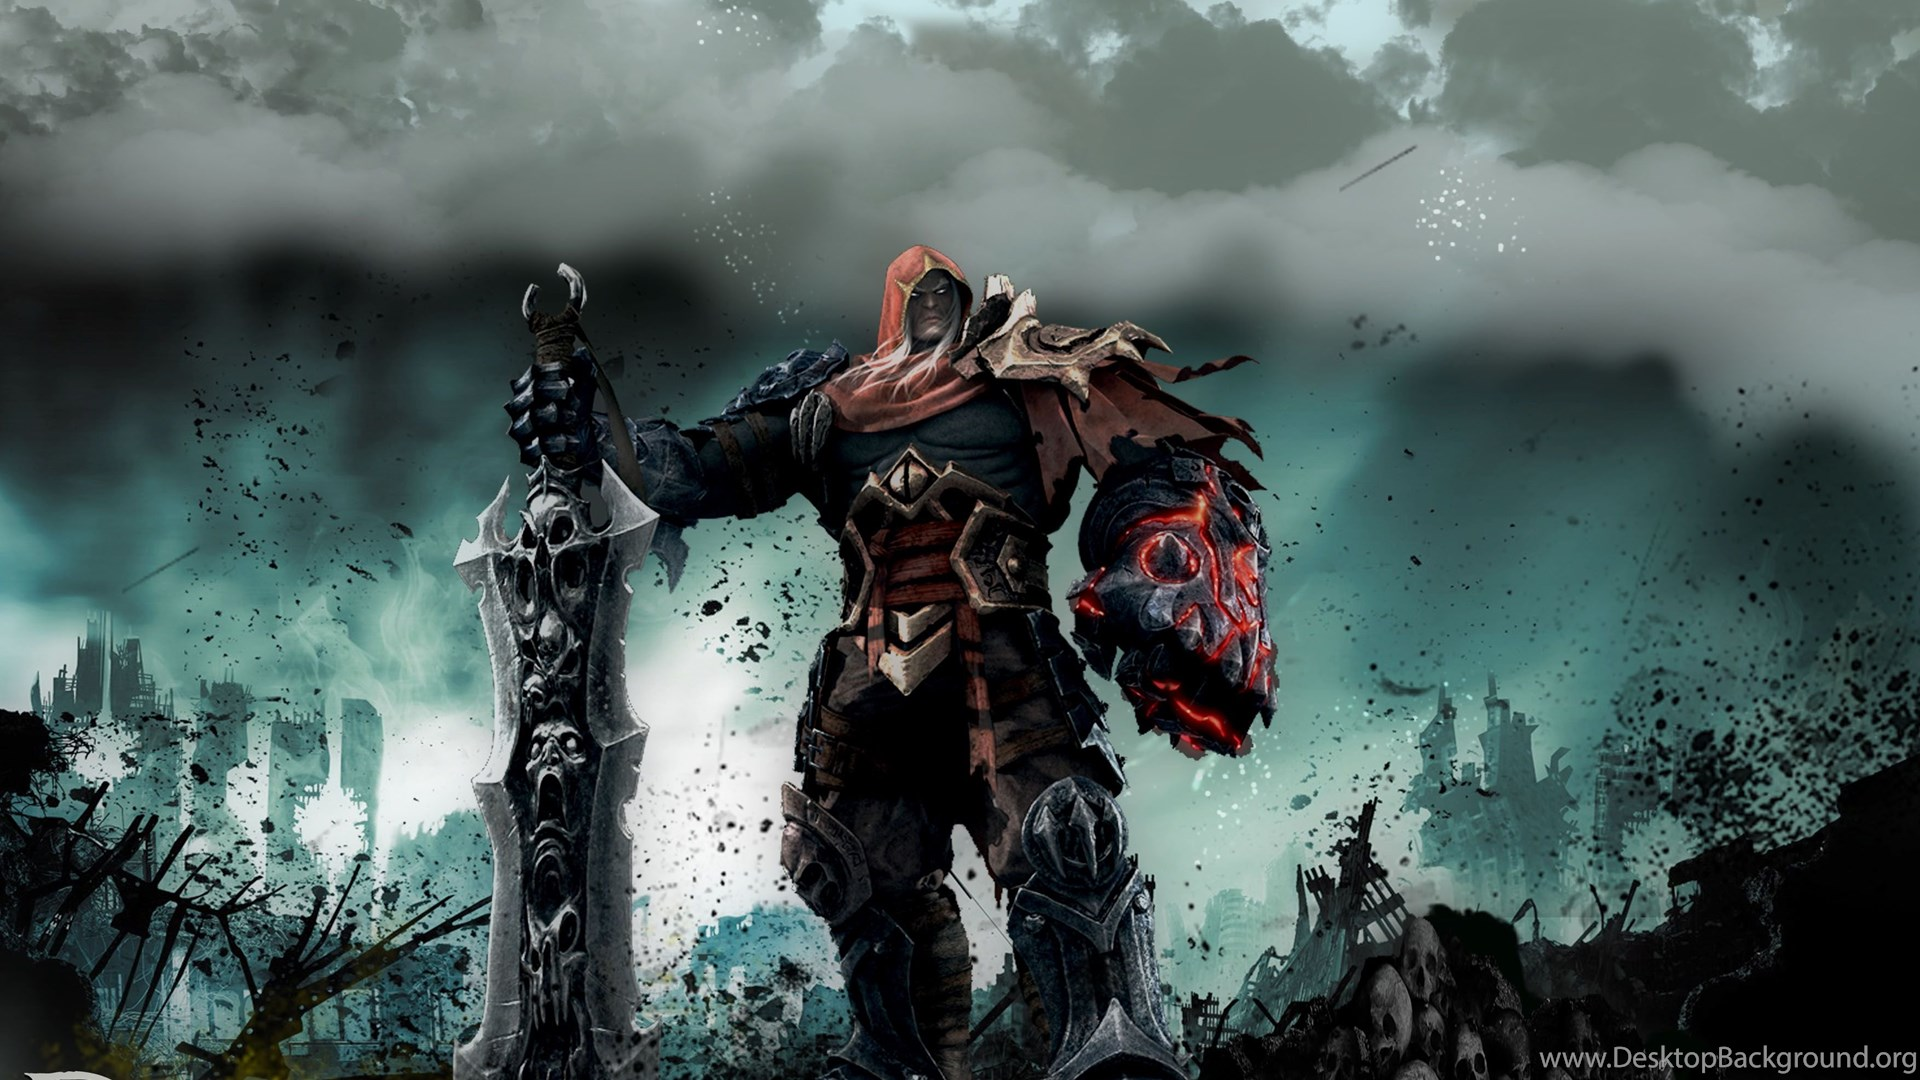 Darksiders War Wallpaper By: 99 Darksiders HD Wallpapers Desktop Background